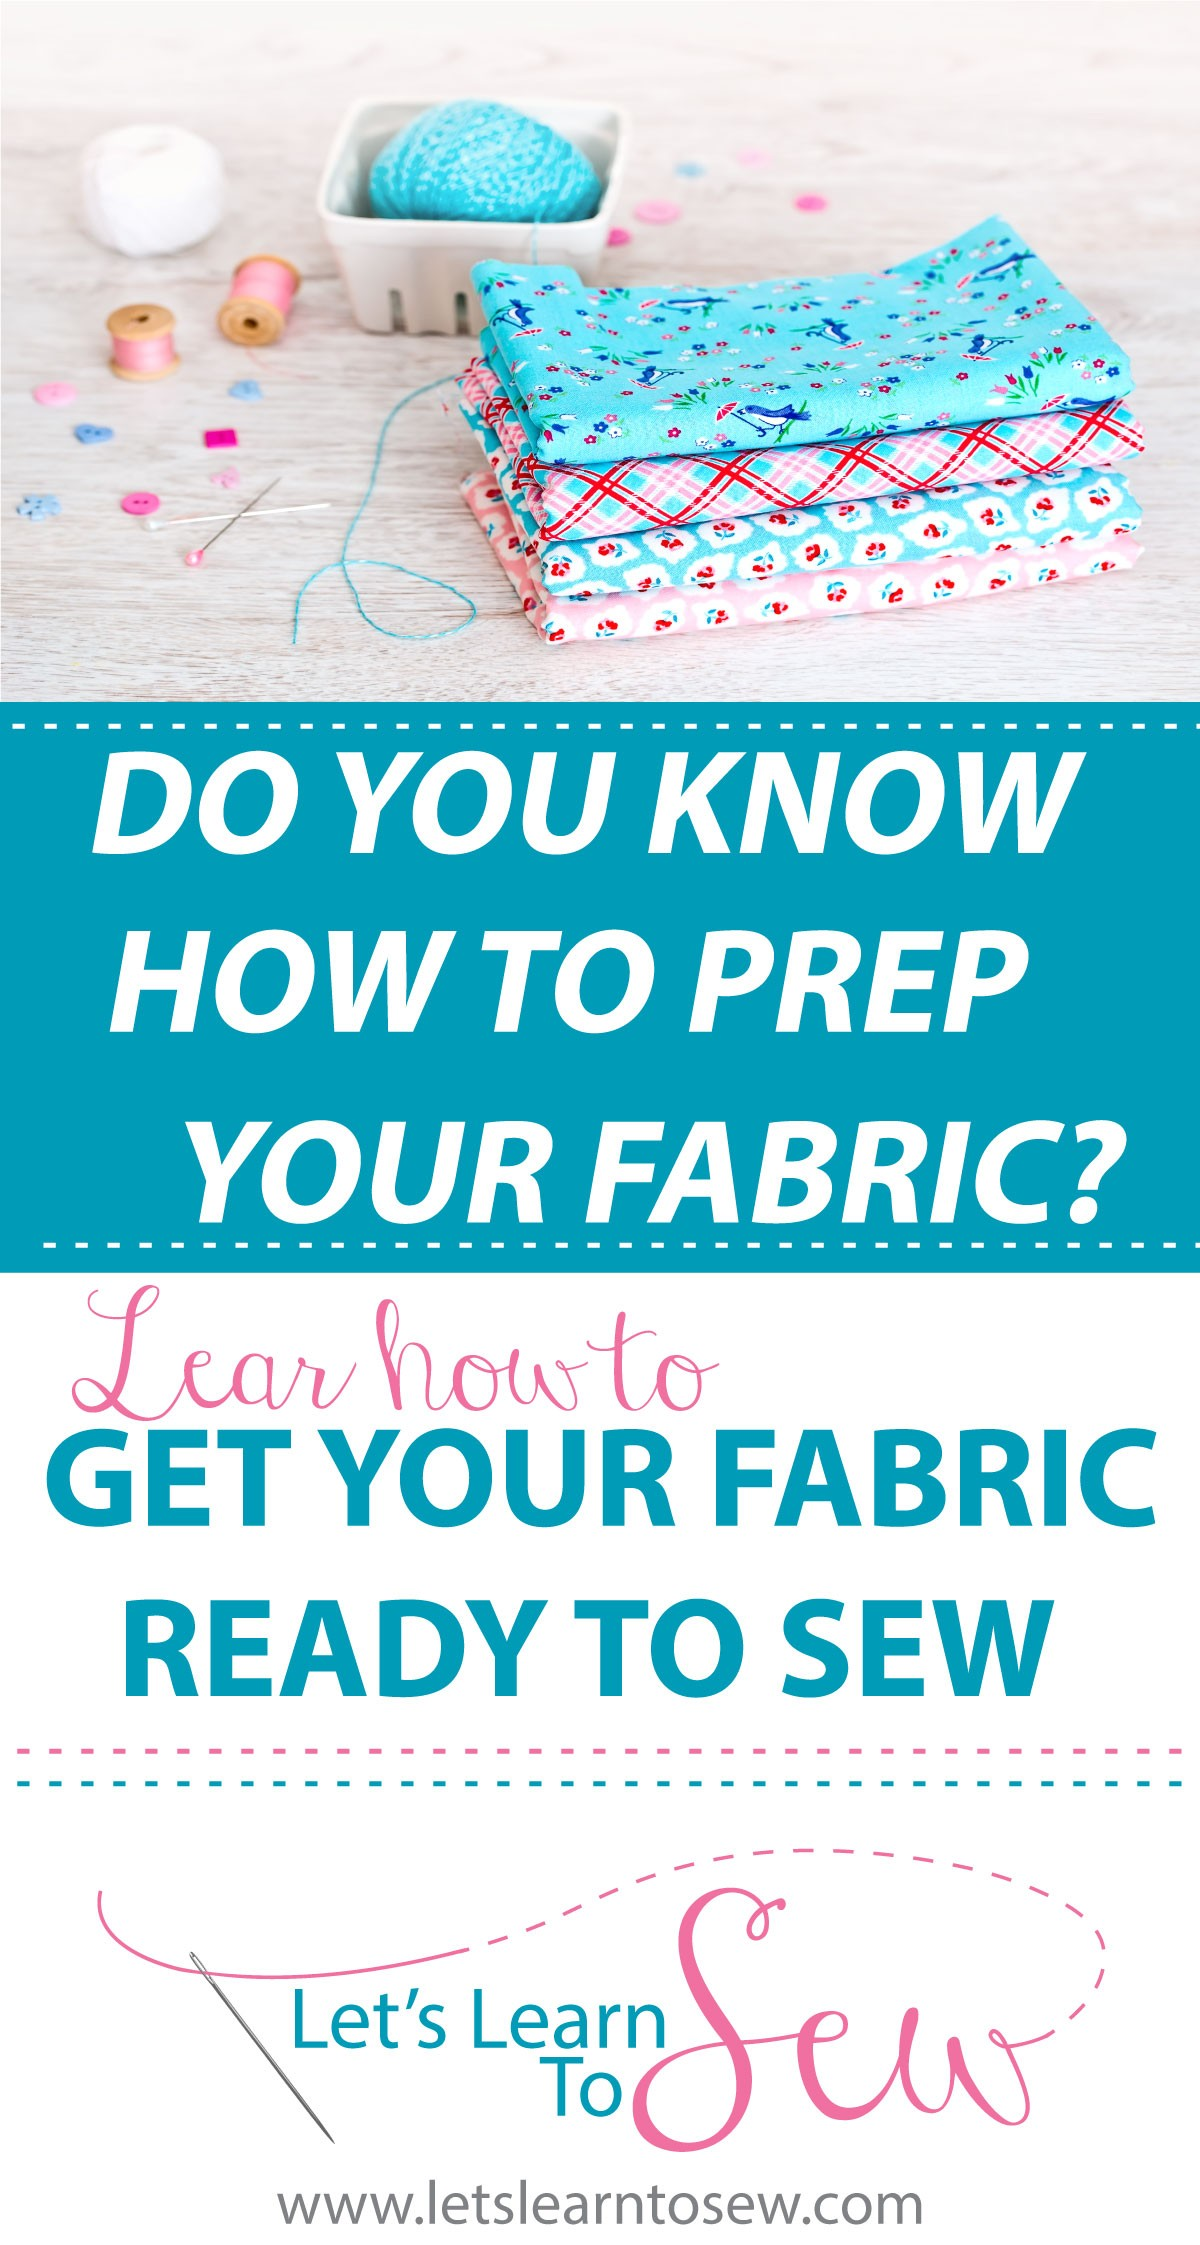 Learn how to get your fabric ready for sewing